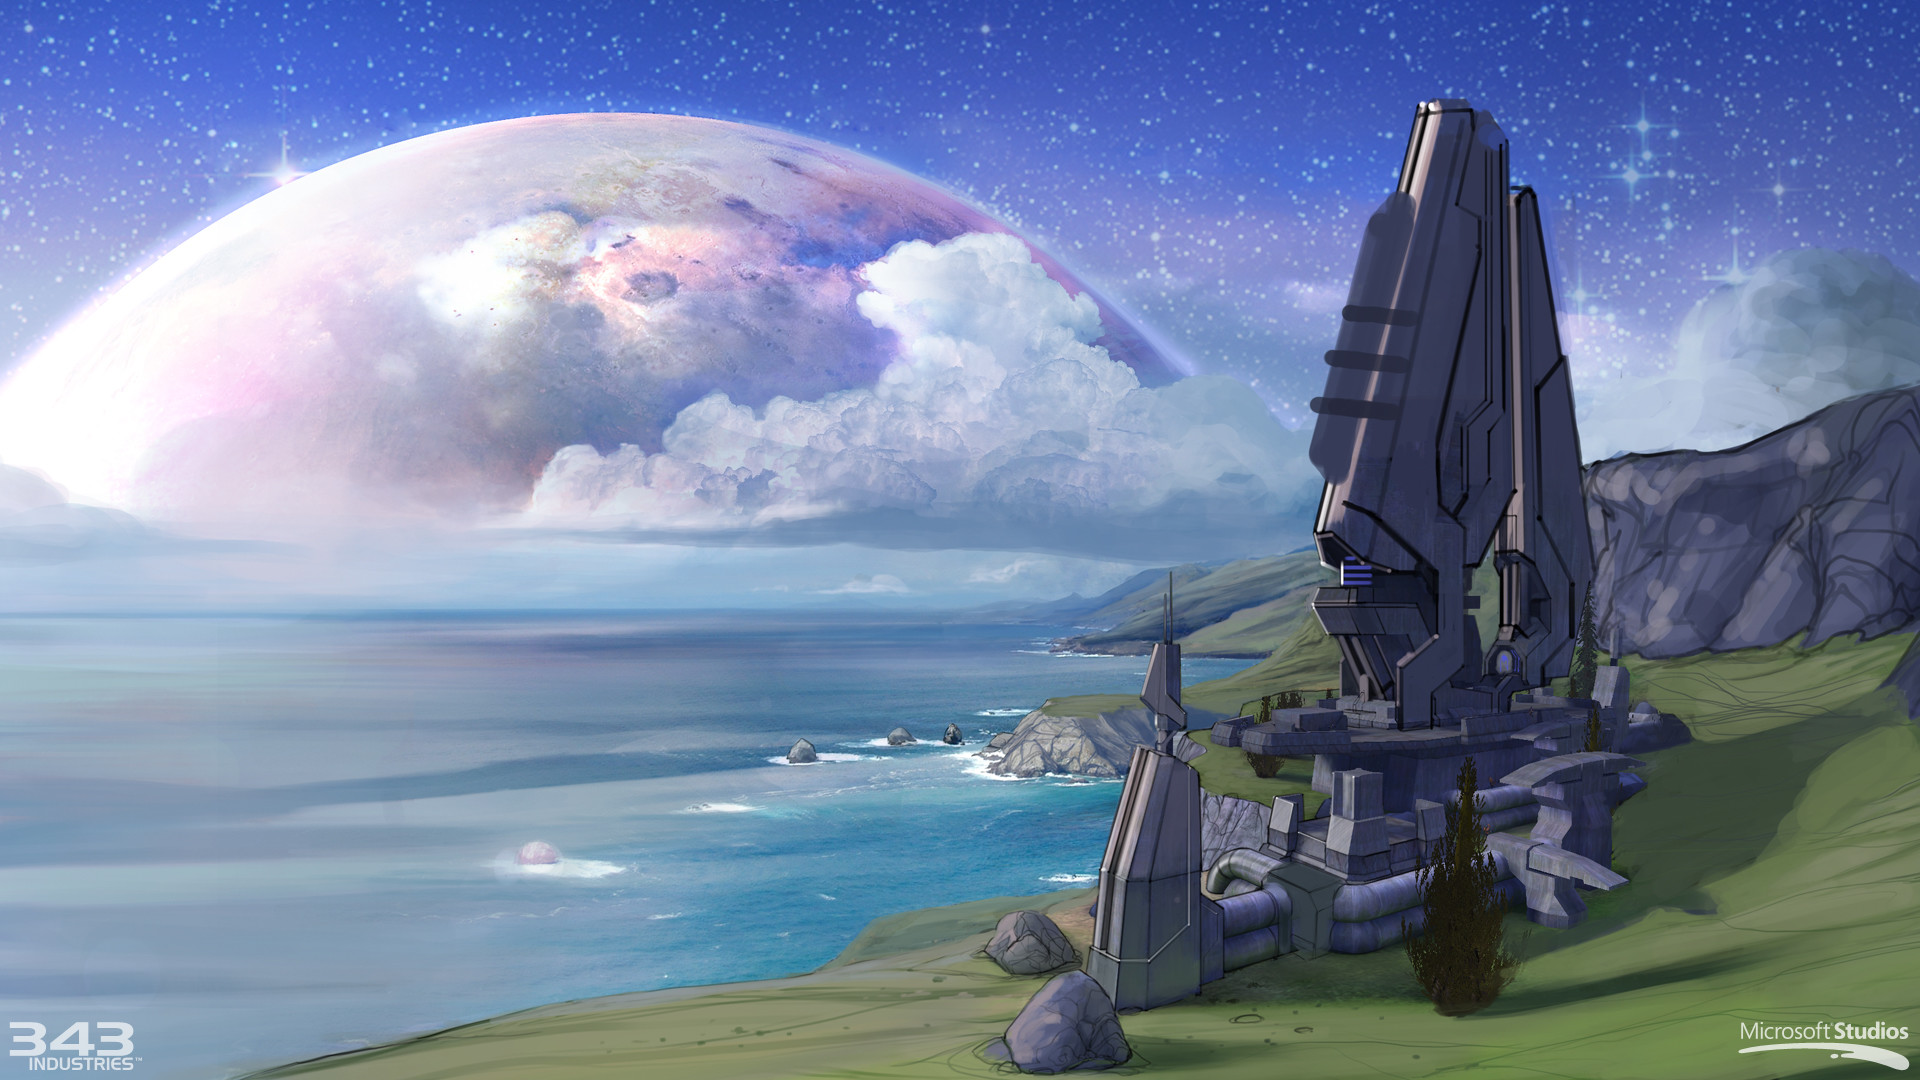 Halo Ring Wallpaper Images & Pictures Becuo